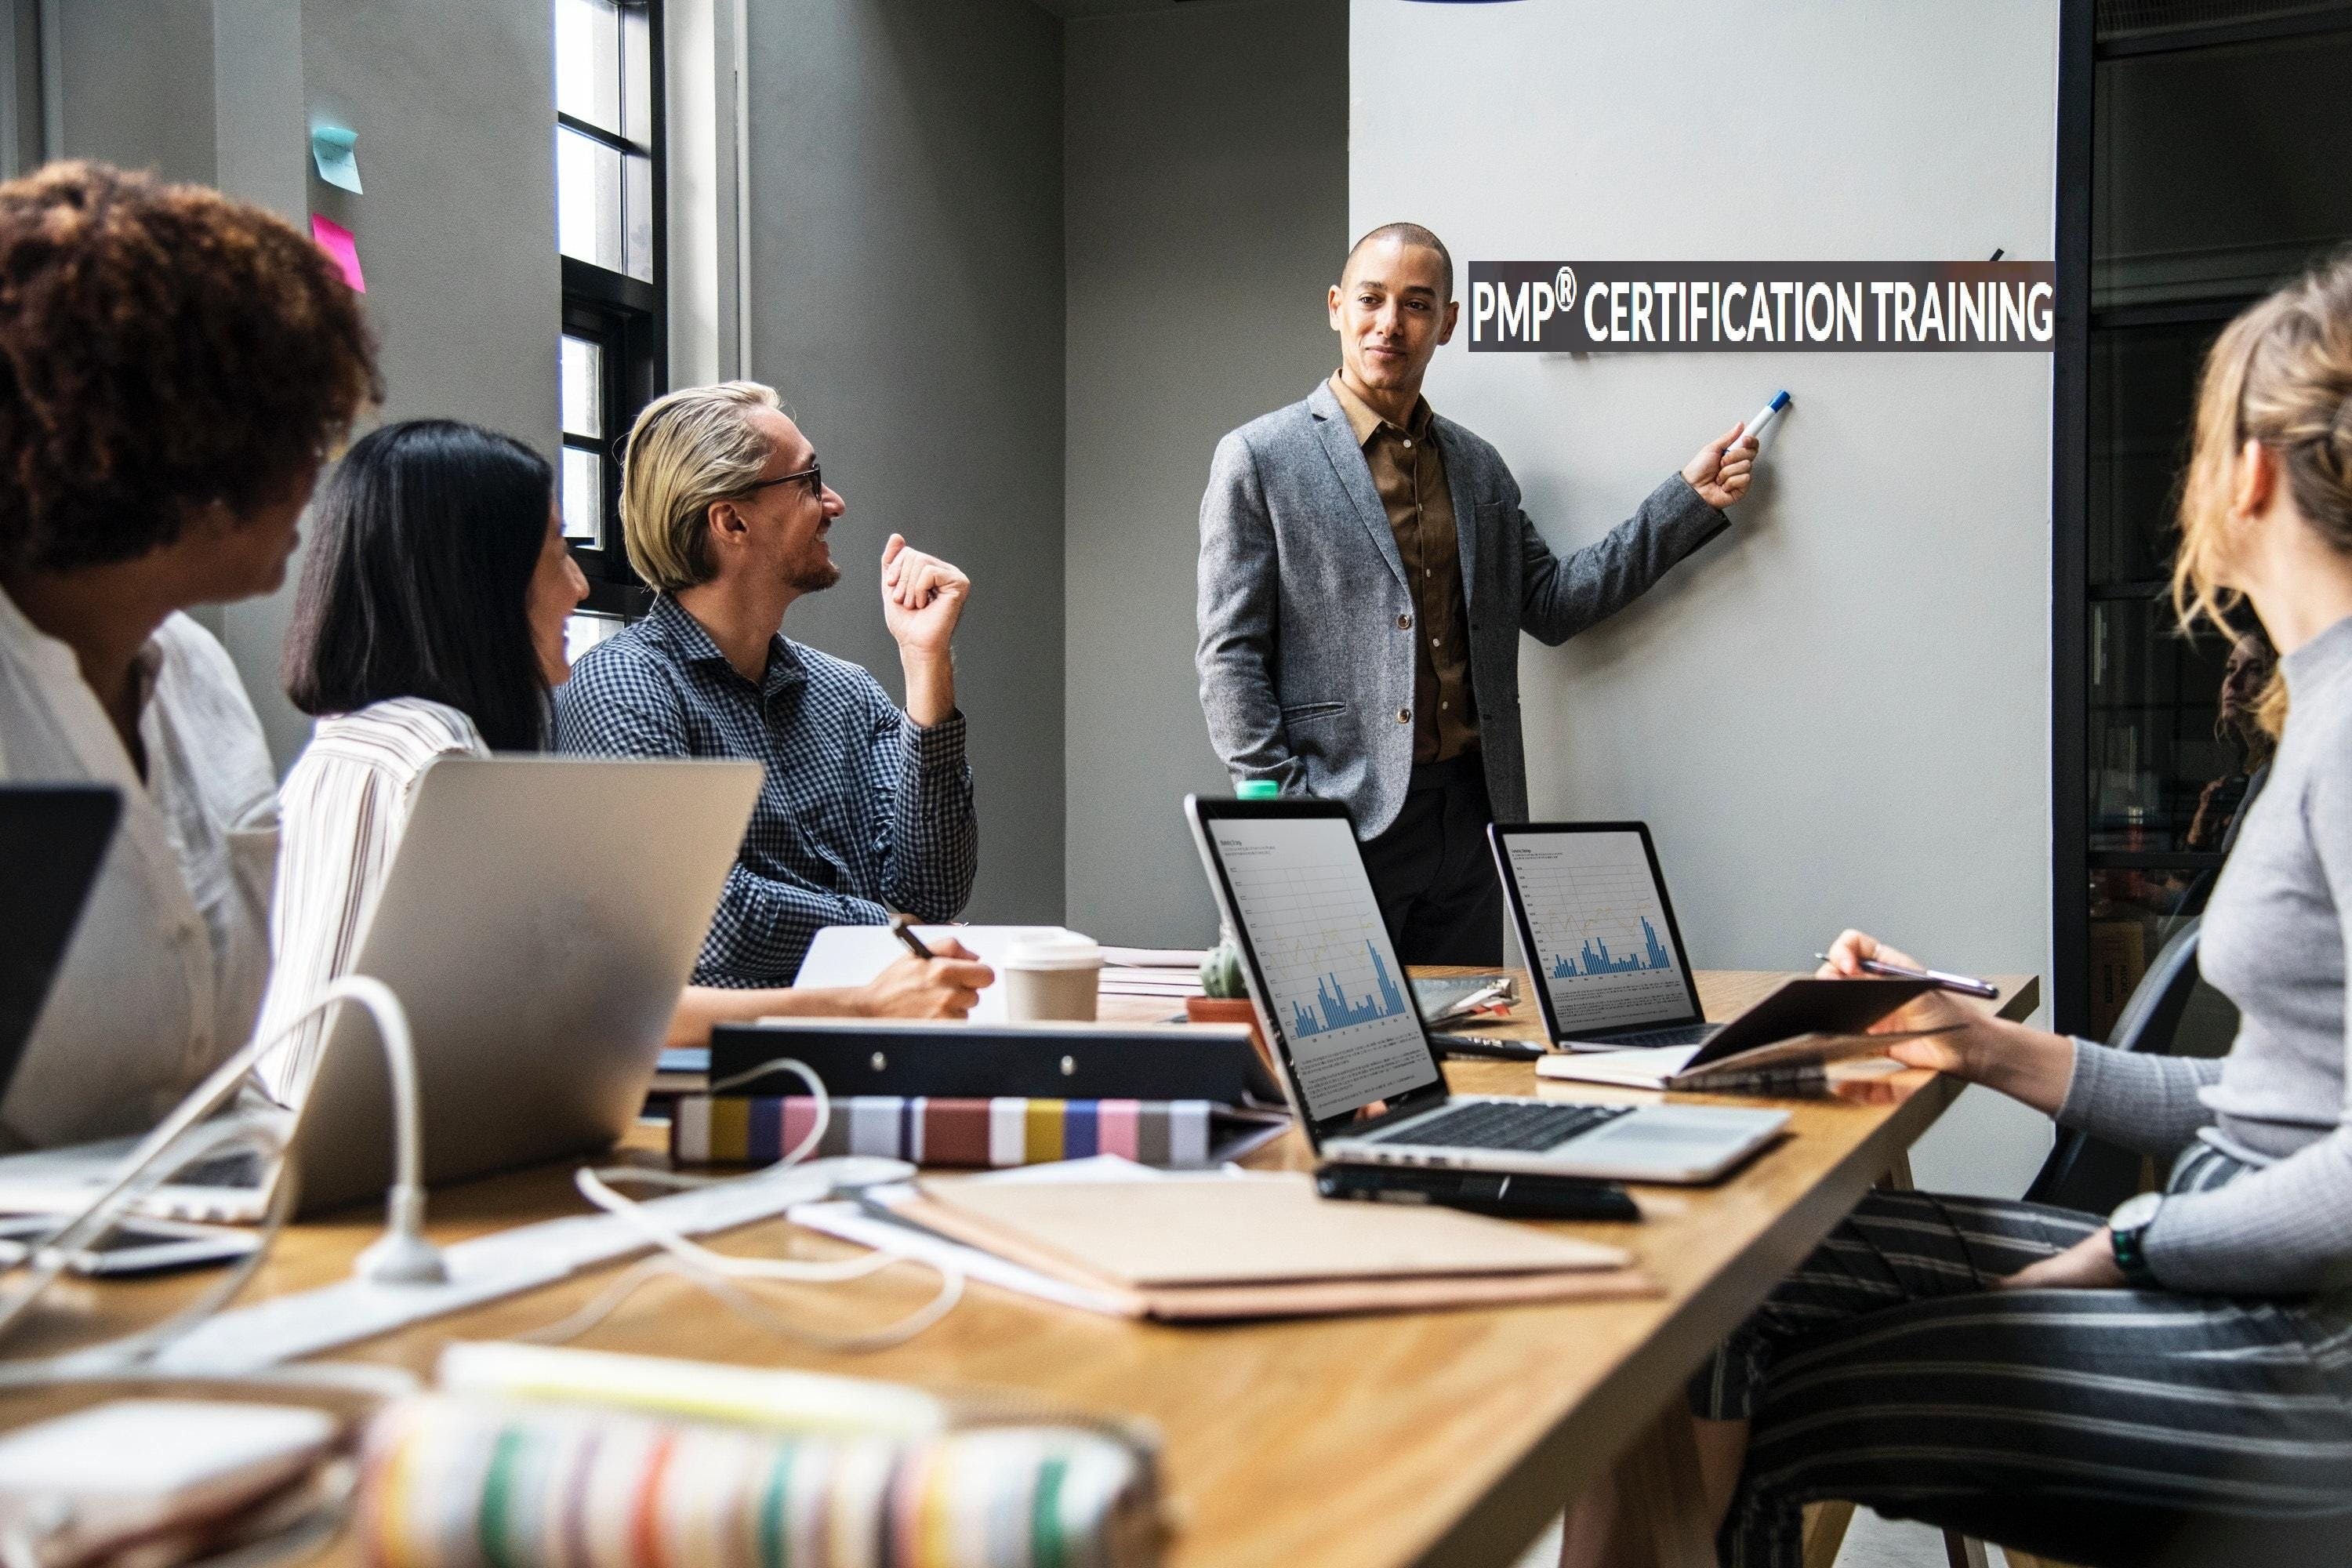 Pmp Training Course In Denver Co 13 Nov 2018